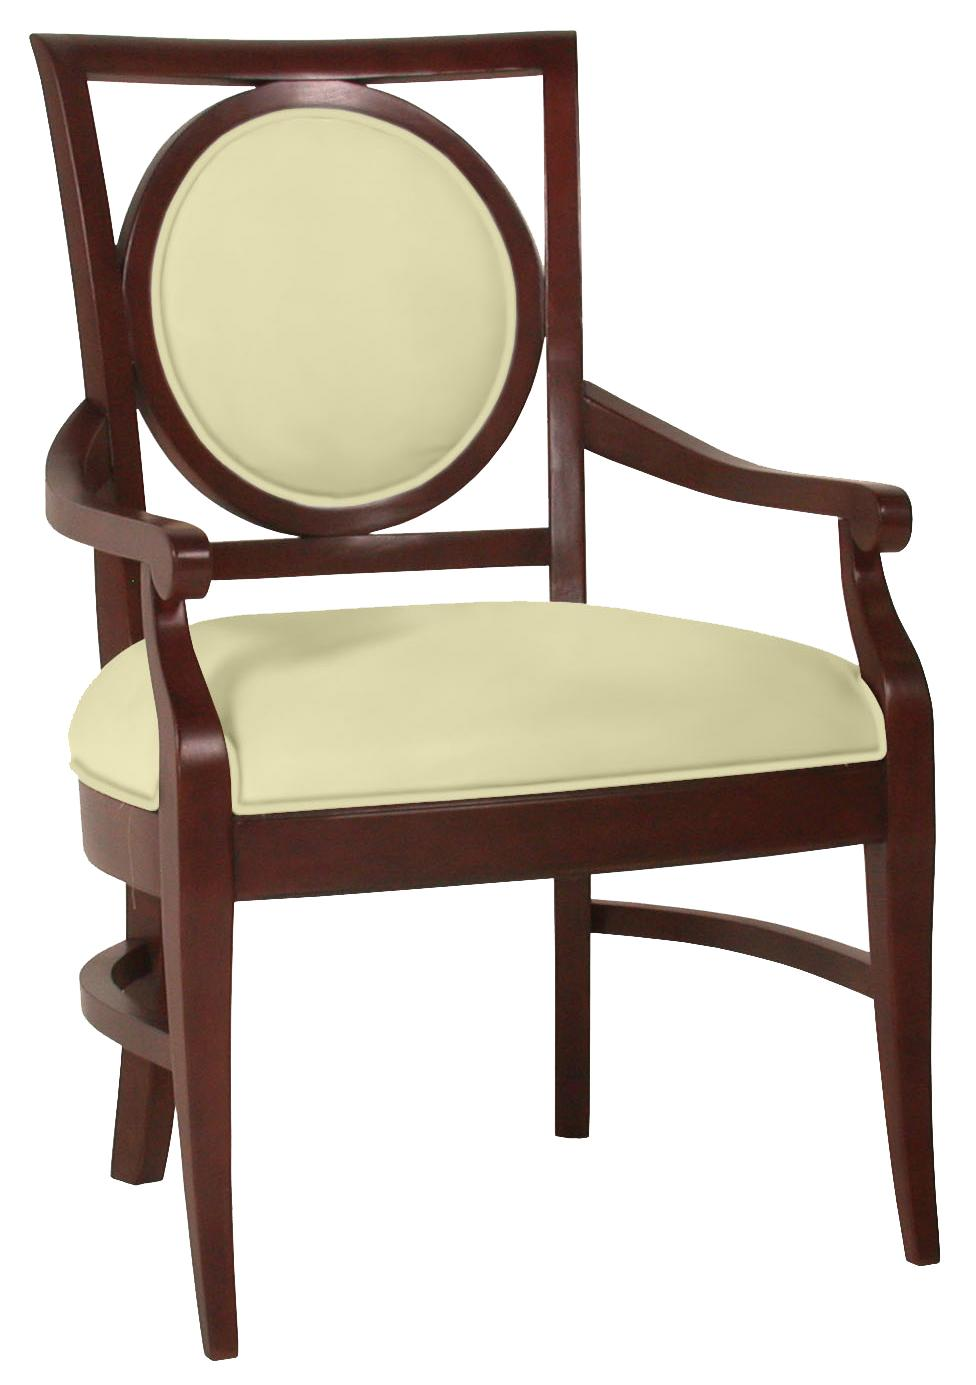 Fairfield Chairs Circle Back Arm Chair - Item Number: 5424-04